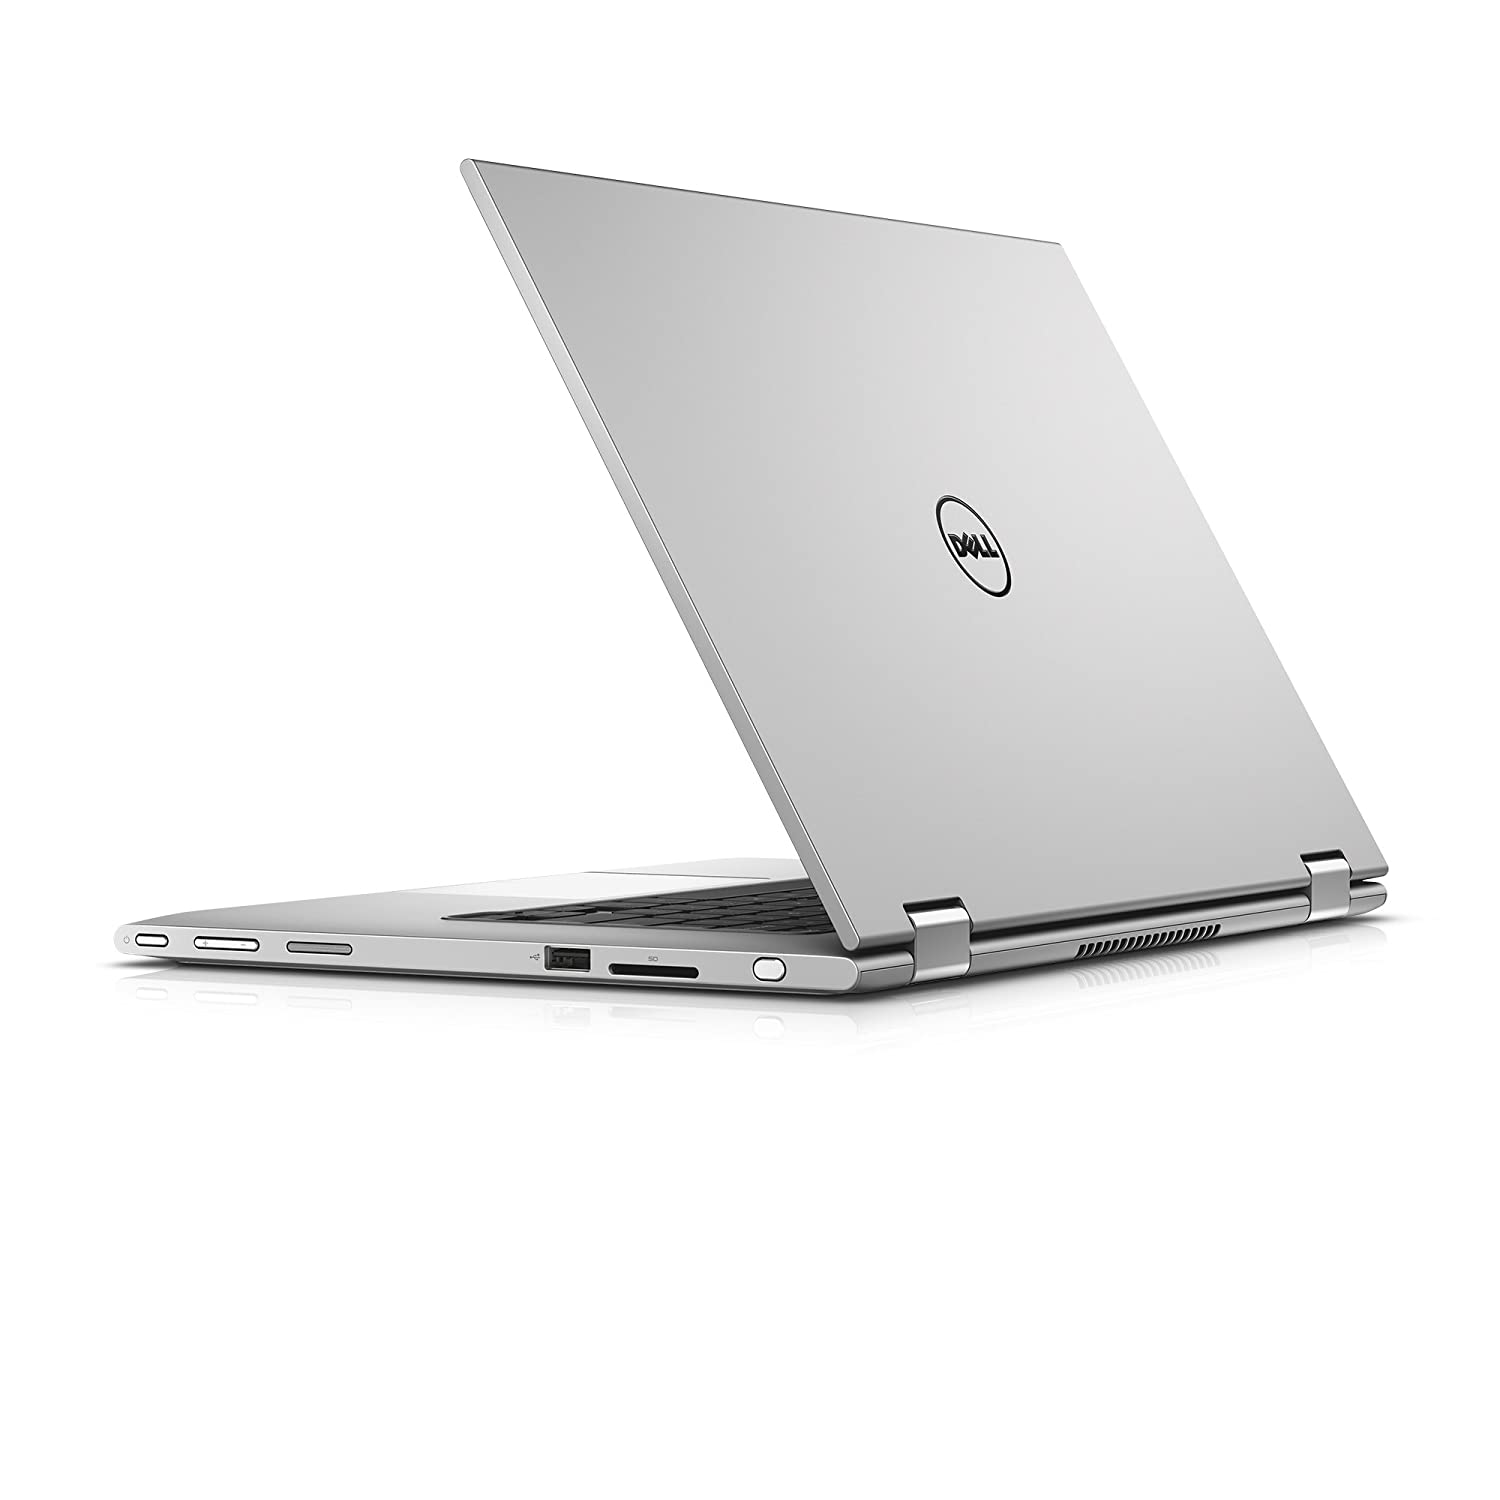 Dell Inspiron 13 7000 Series 133 Inch Convertible 2 In Hardisk External 2tb 25amp039 Usb30 Slim 1 Touchscreen Laptop I7348 4286slv Computers Accessories